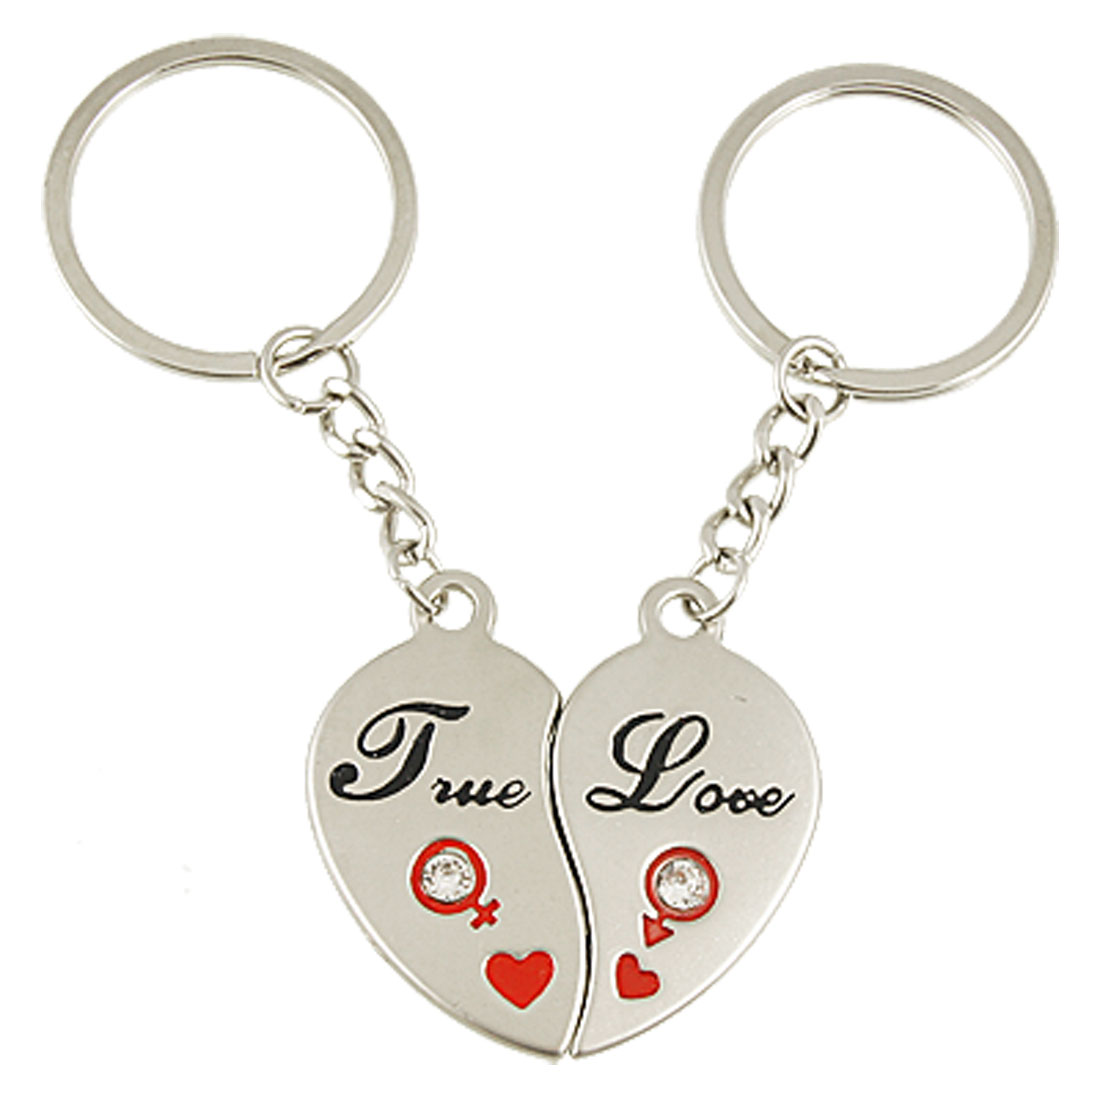 2 Pcs Magnetic Heart Pendant Metal Key Rings Chain for Lover Couple